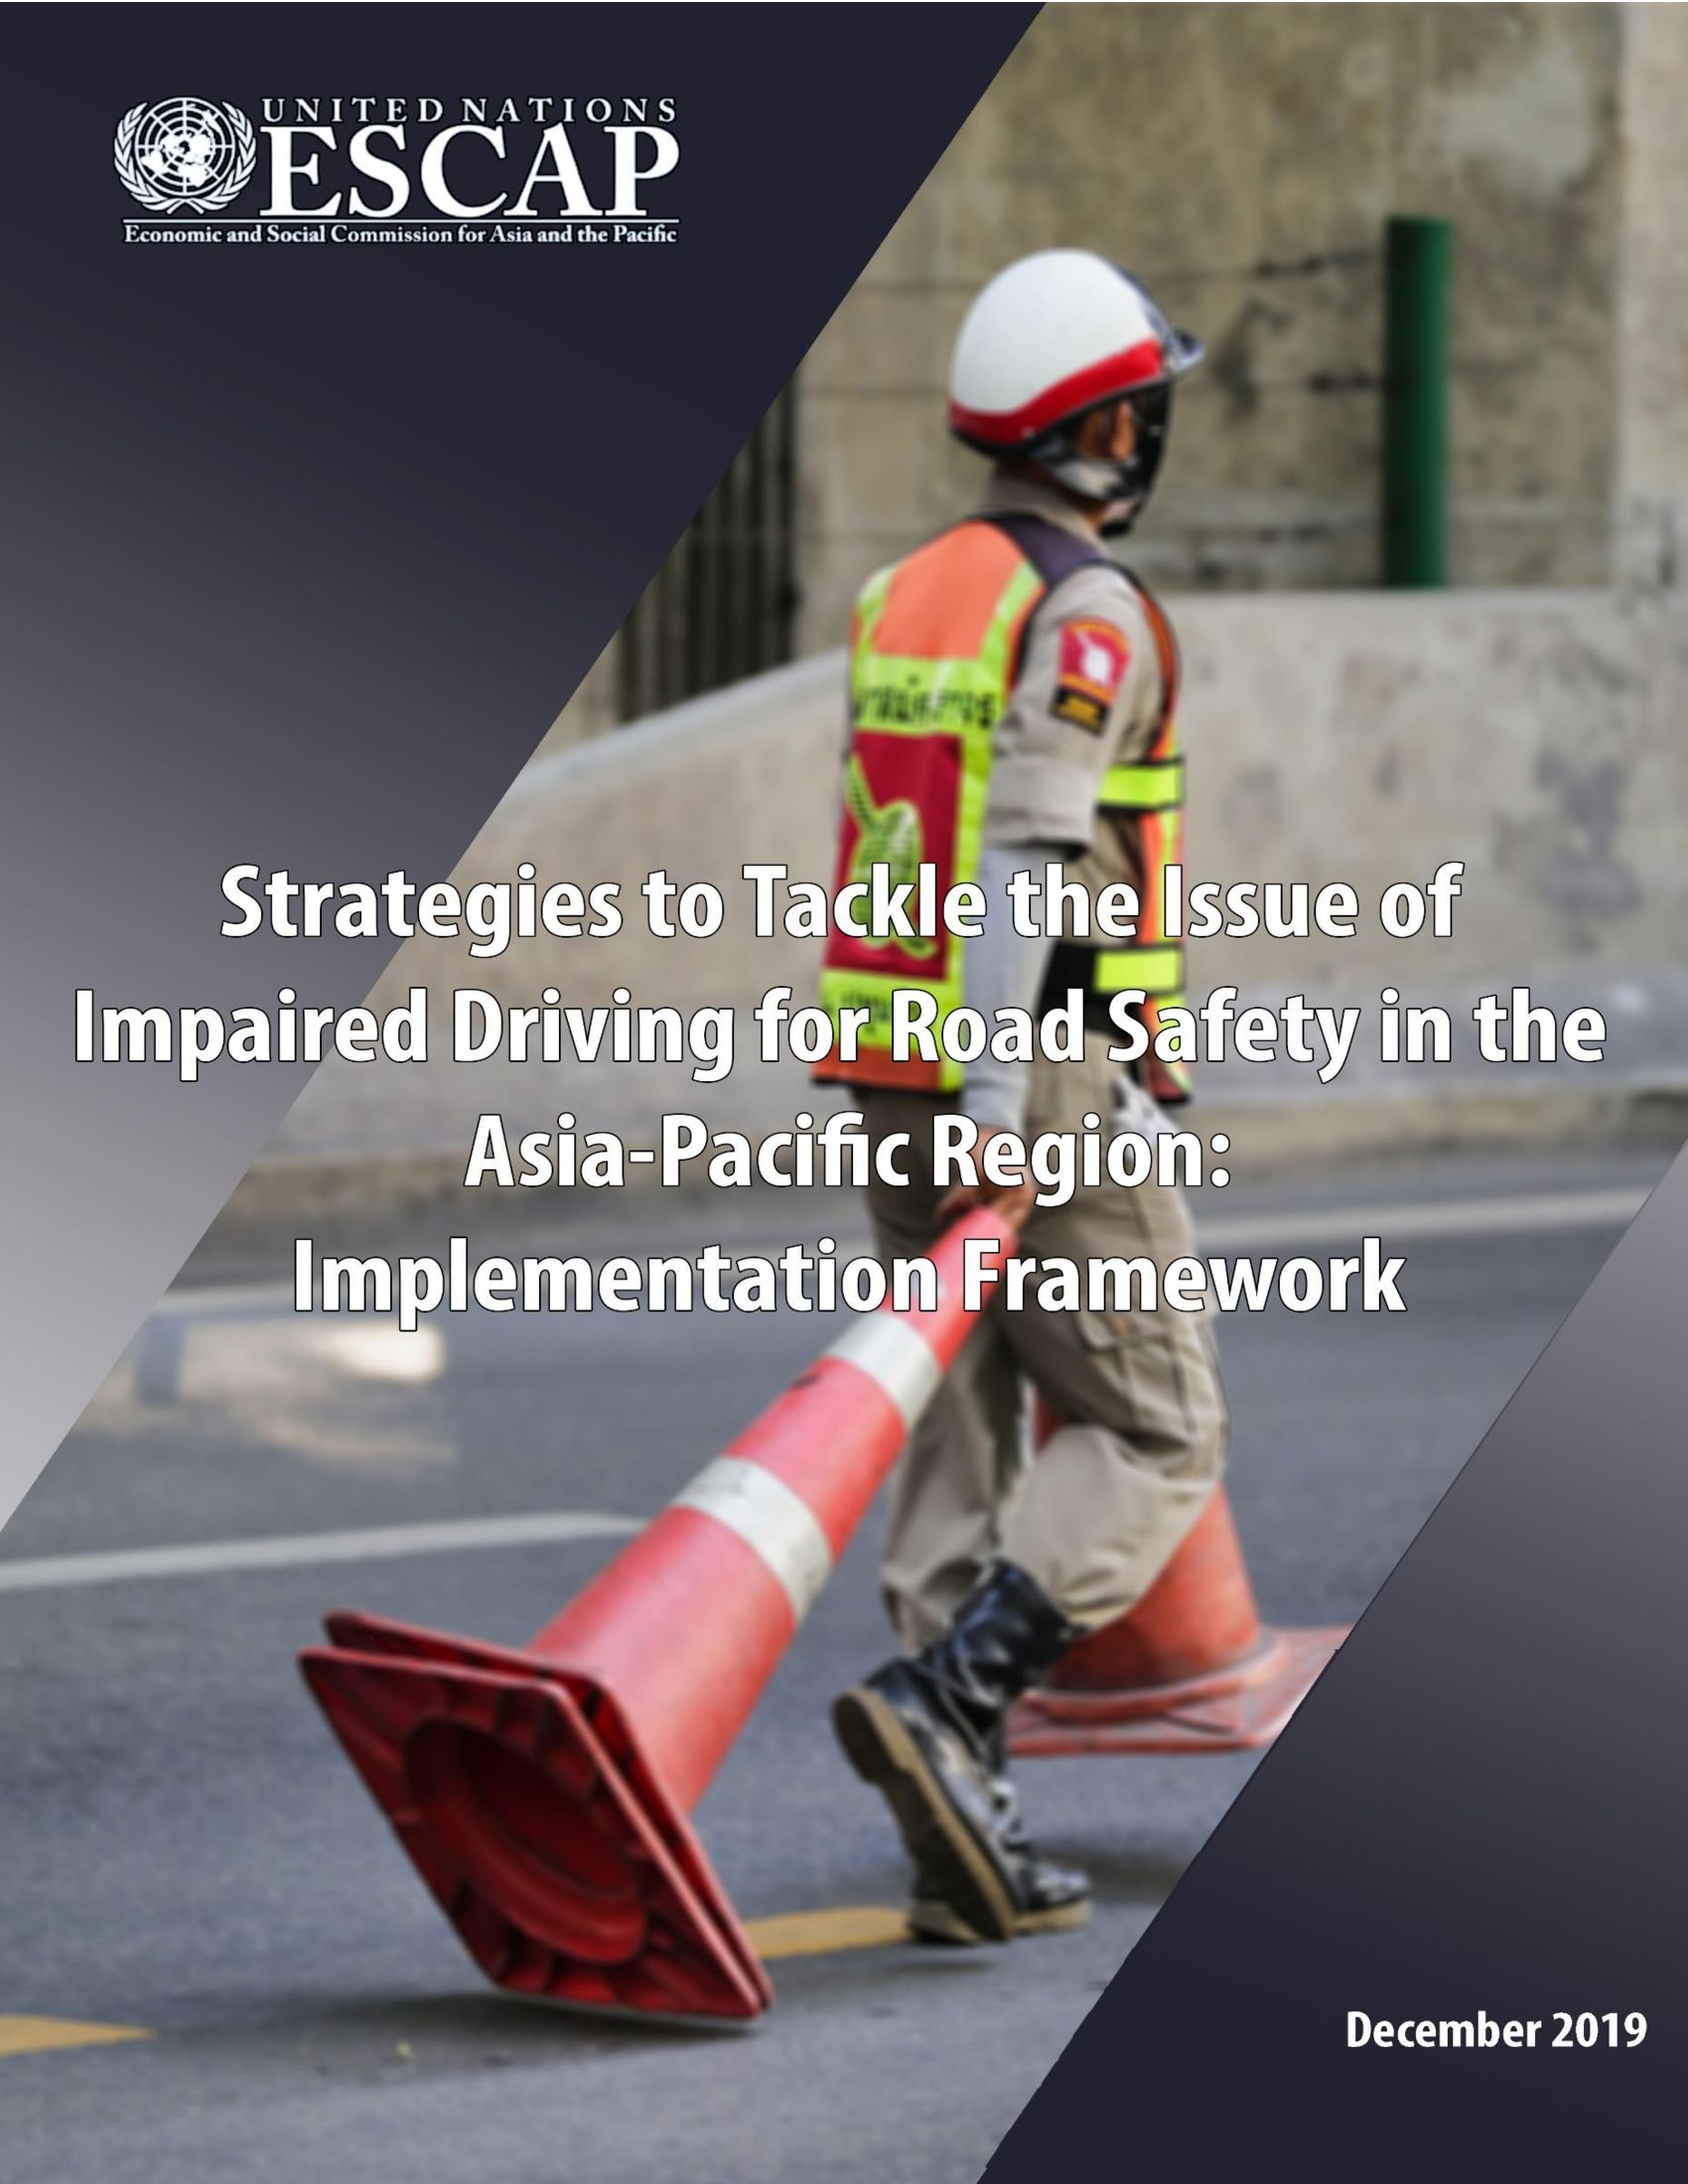 Strategies to Tackle the Issue of Impaired Driving for Road Safety in the Asia-Pacific Region: Implementation Framework